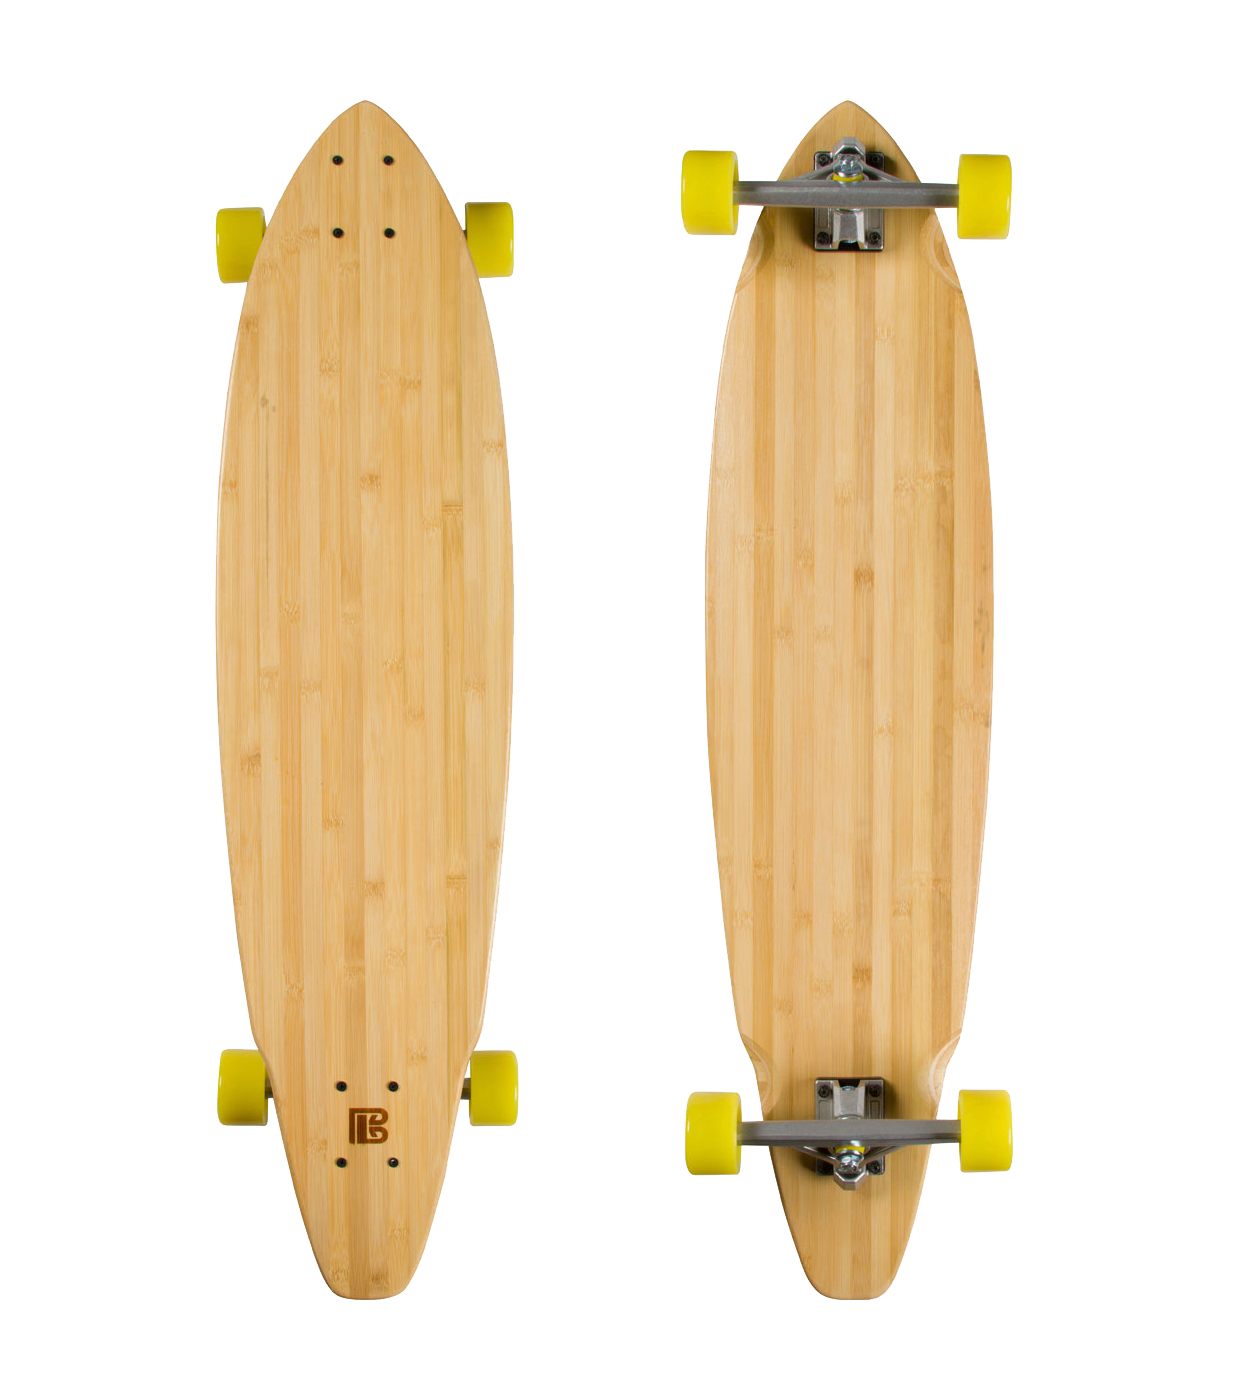 Xibalba Directional Drop Through Longboard